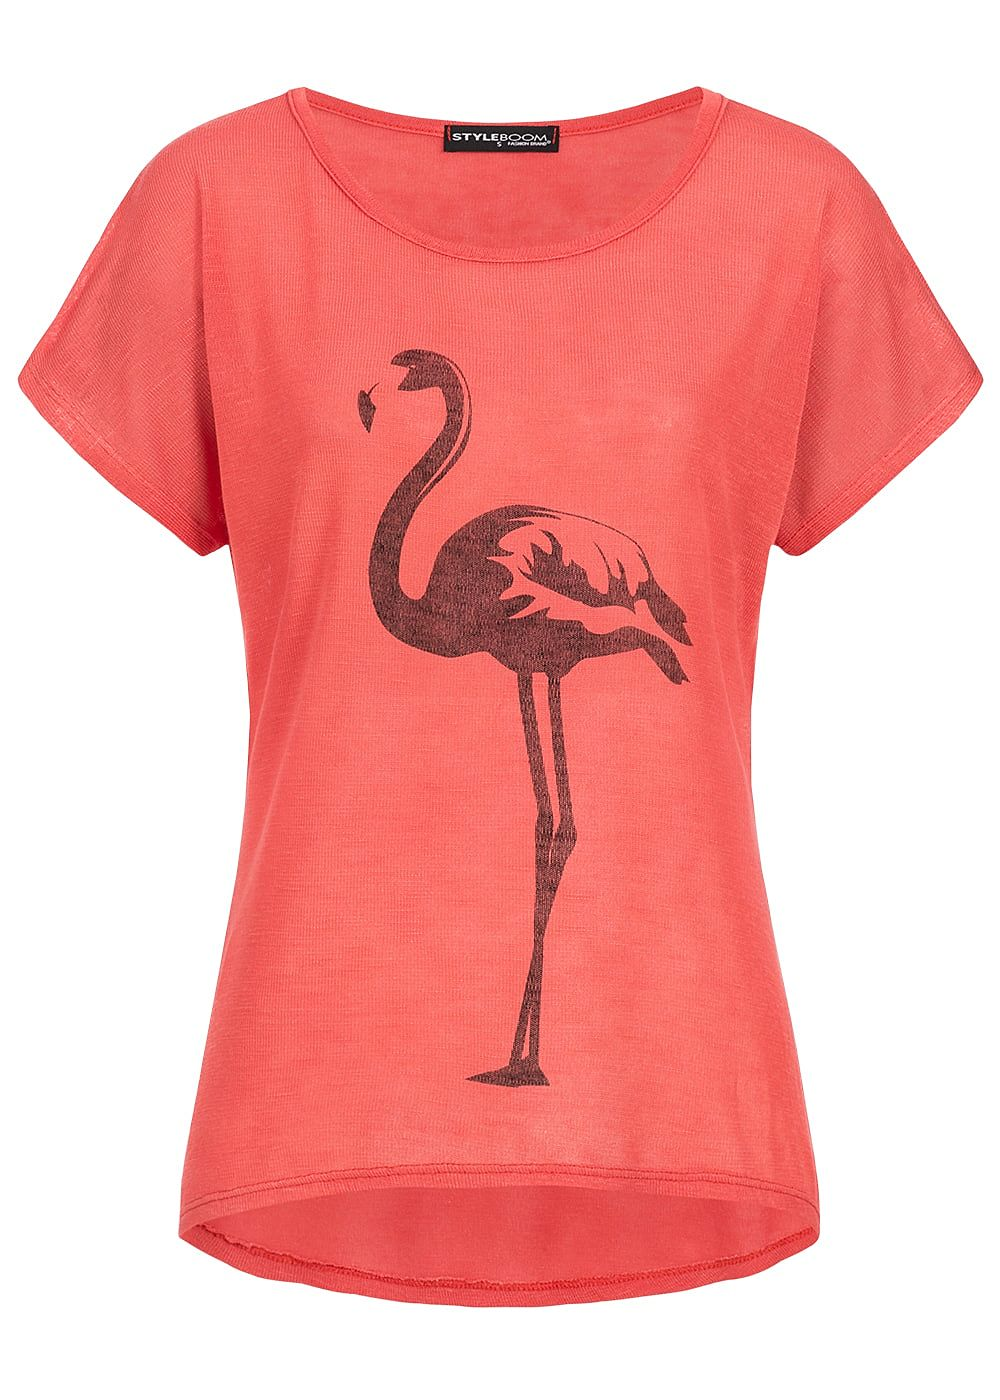 styleboom fashion damen t shirt flamingo print coral rot schwarz 77onlineshop. Black Bedroom Furniture Sets. Home Design Ideas